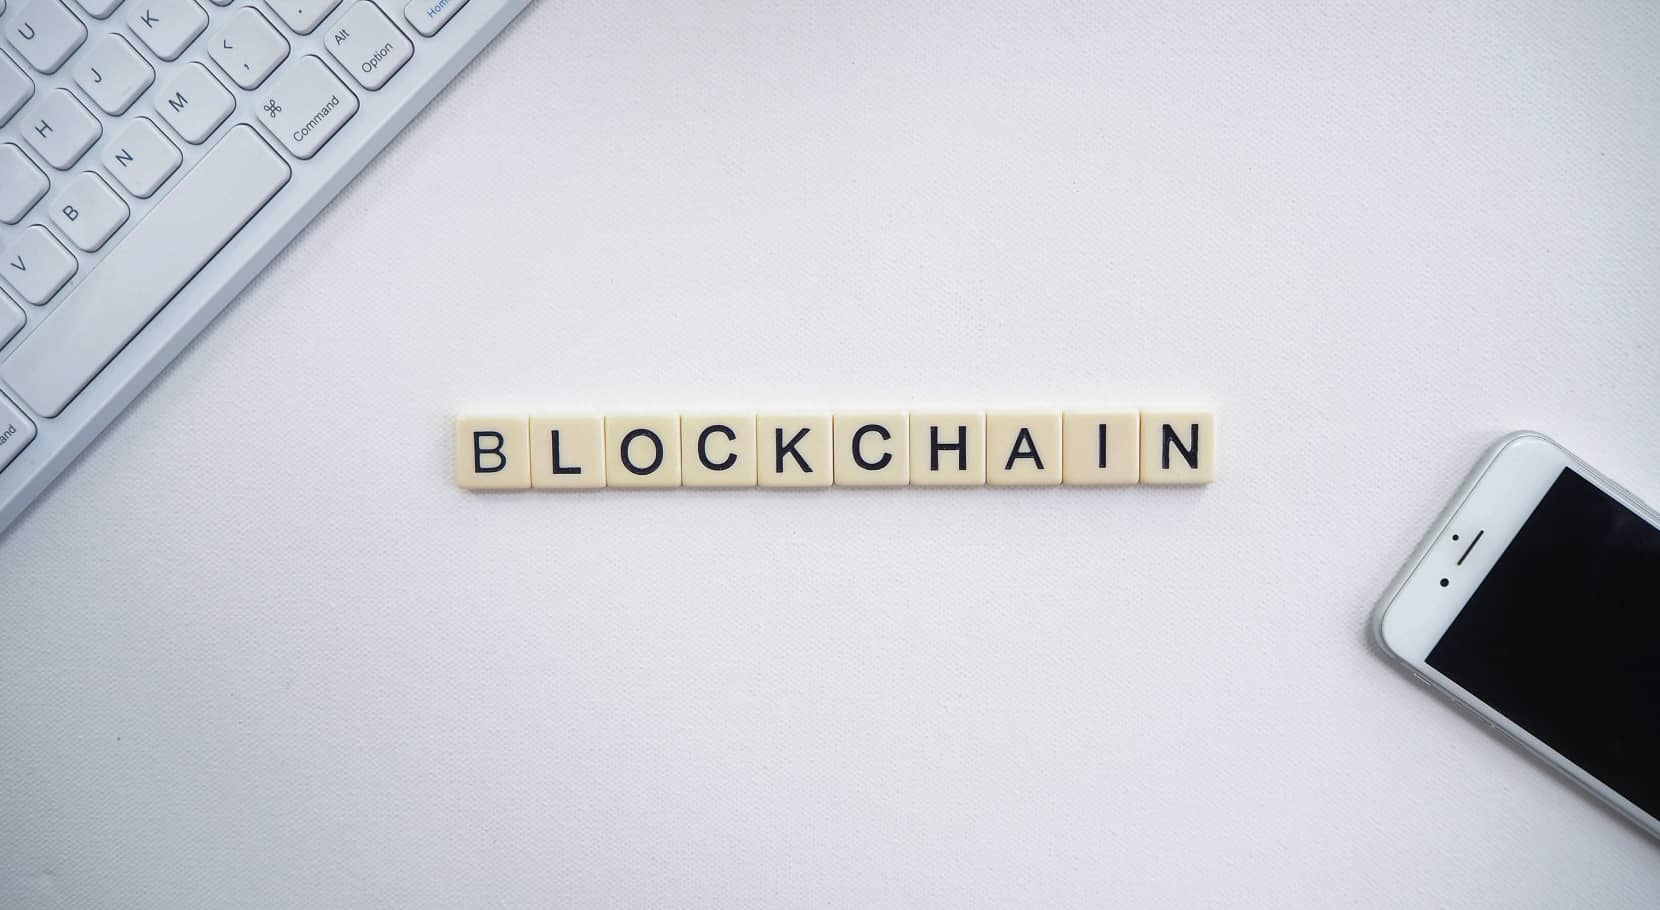 Blockchain : solution contre la fraude publicitaire